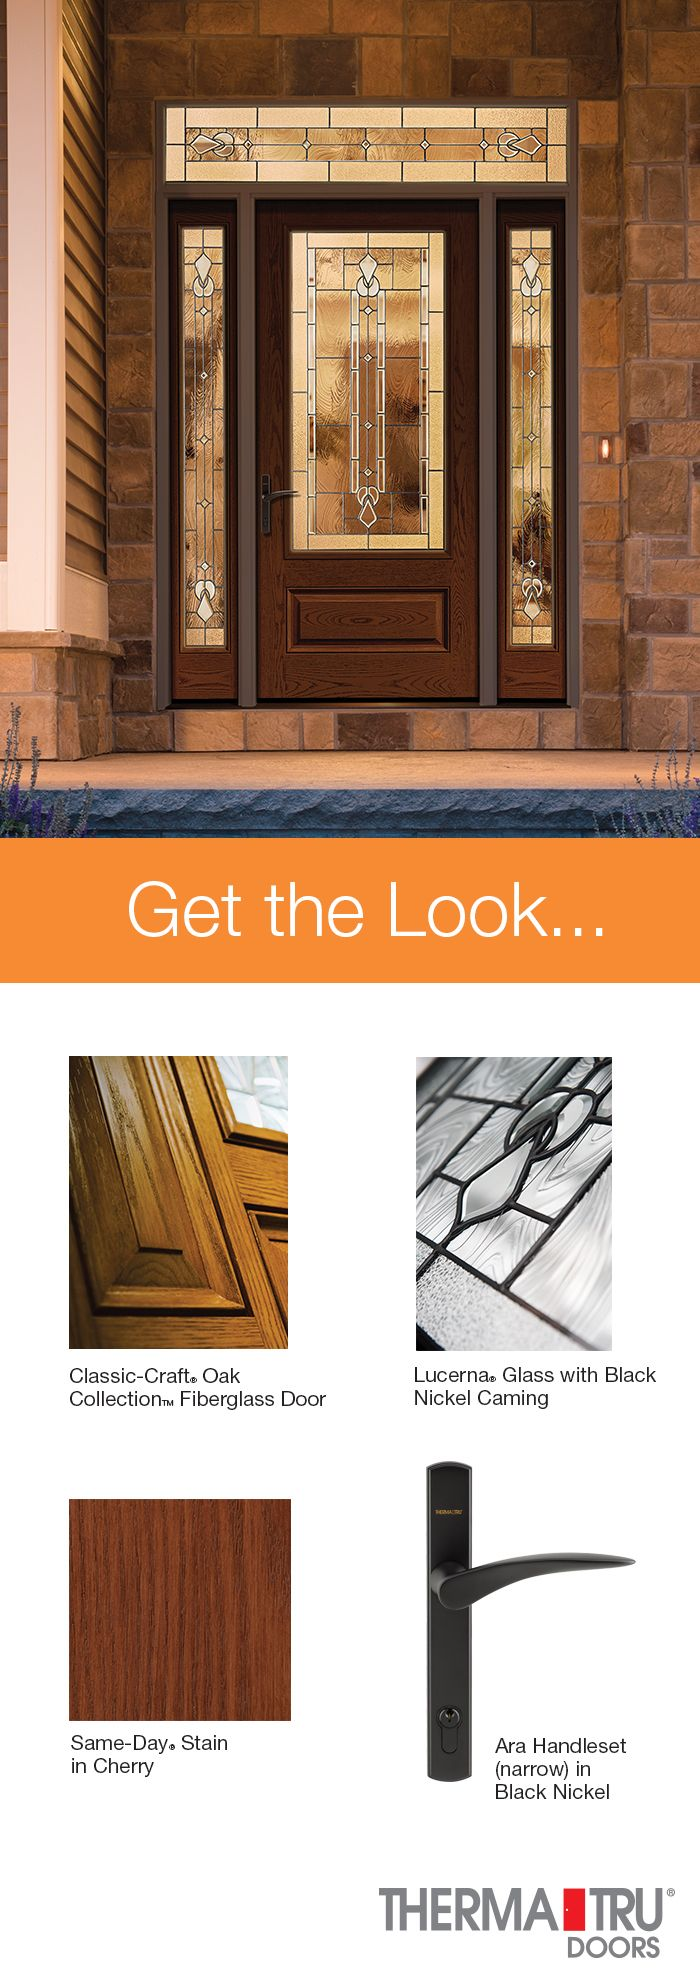 Therma-Tru Classic-Craft Oak Collection fiberglass door sidelites and transom with Lucerna & Therma-Tru Classic-Craft Oak Collection fiberglass door sidelites ...